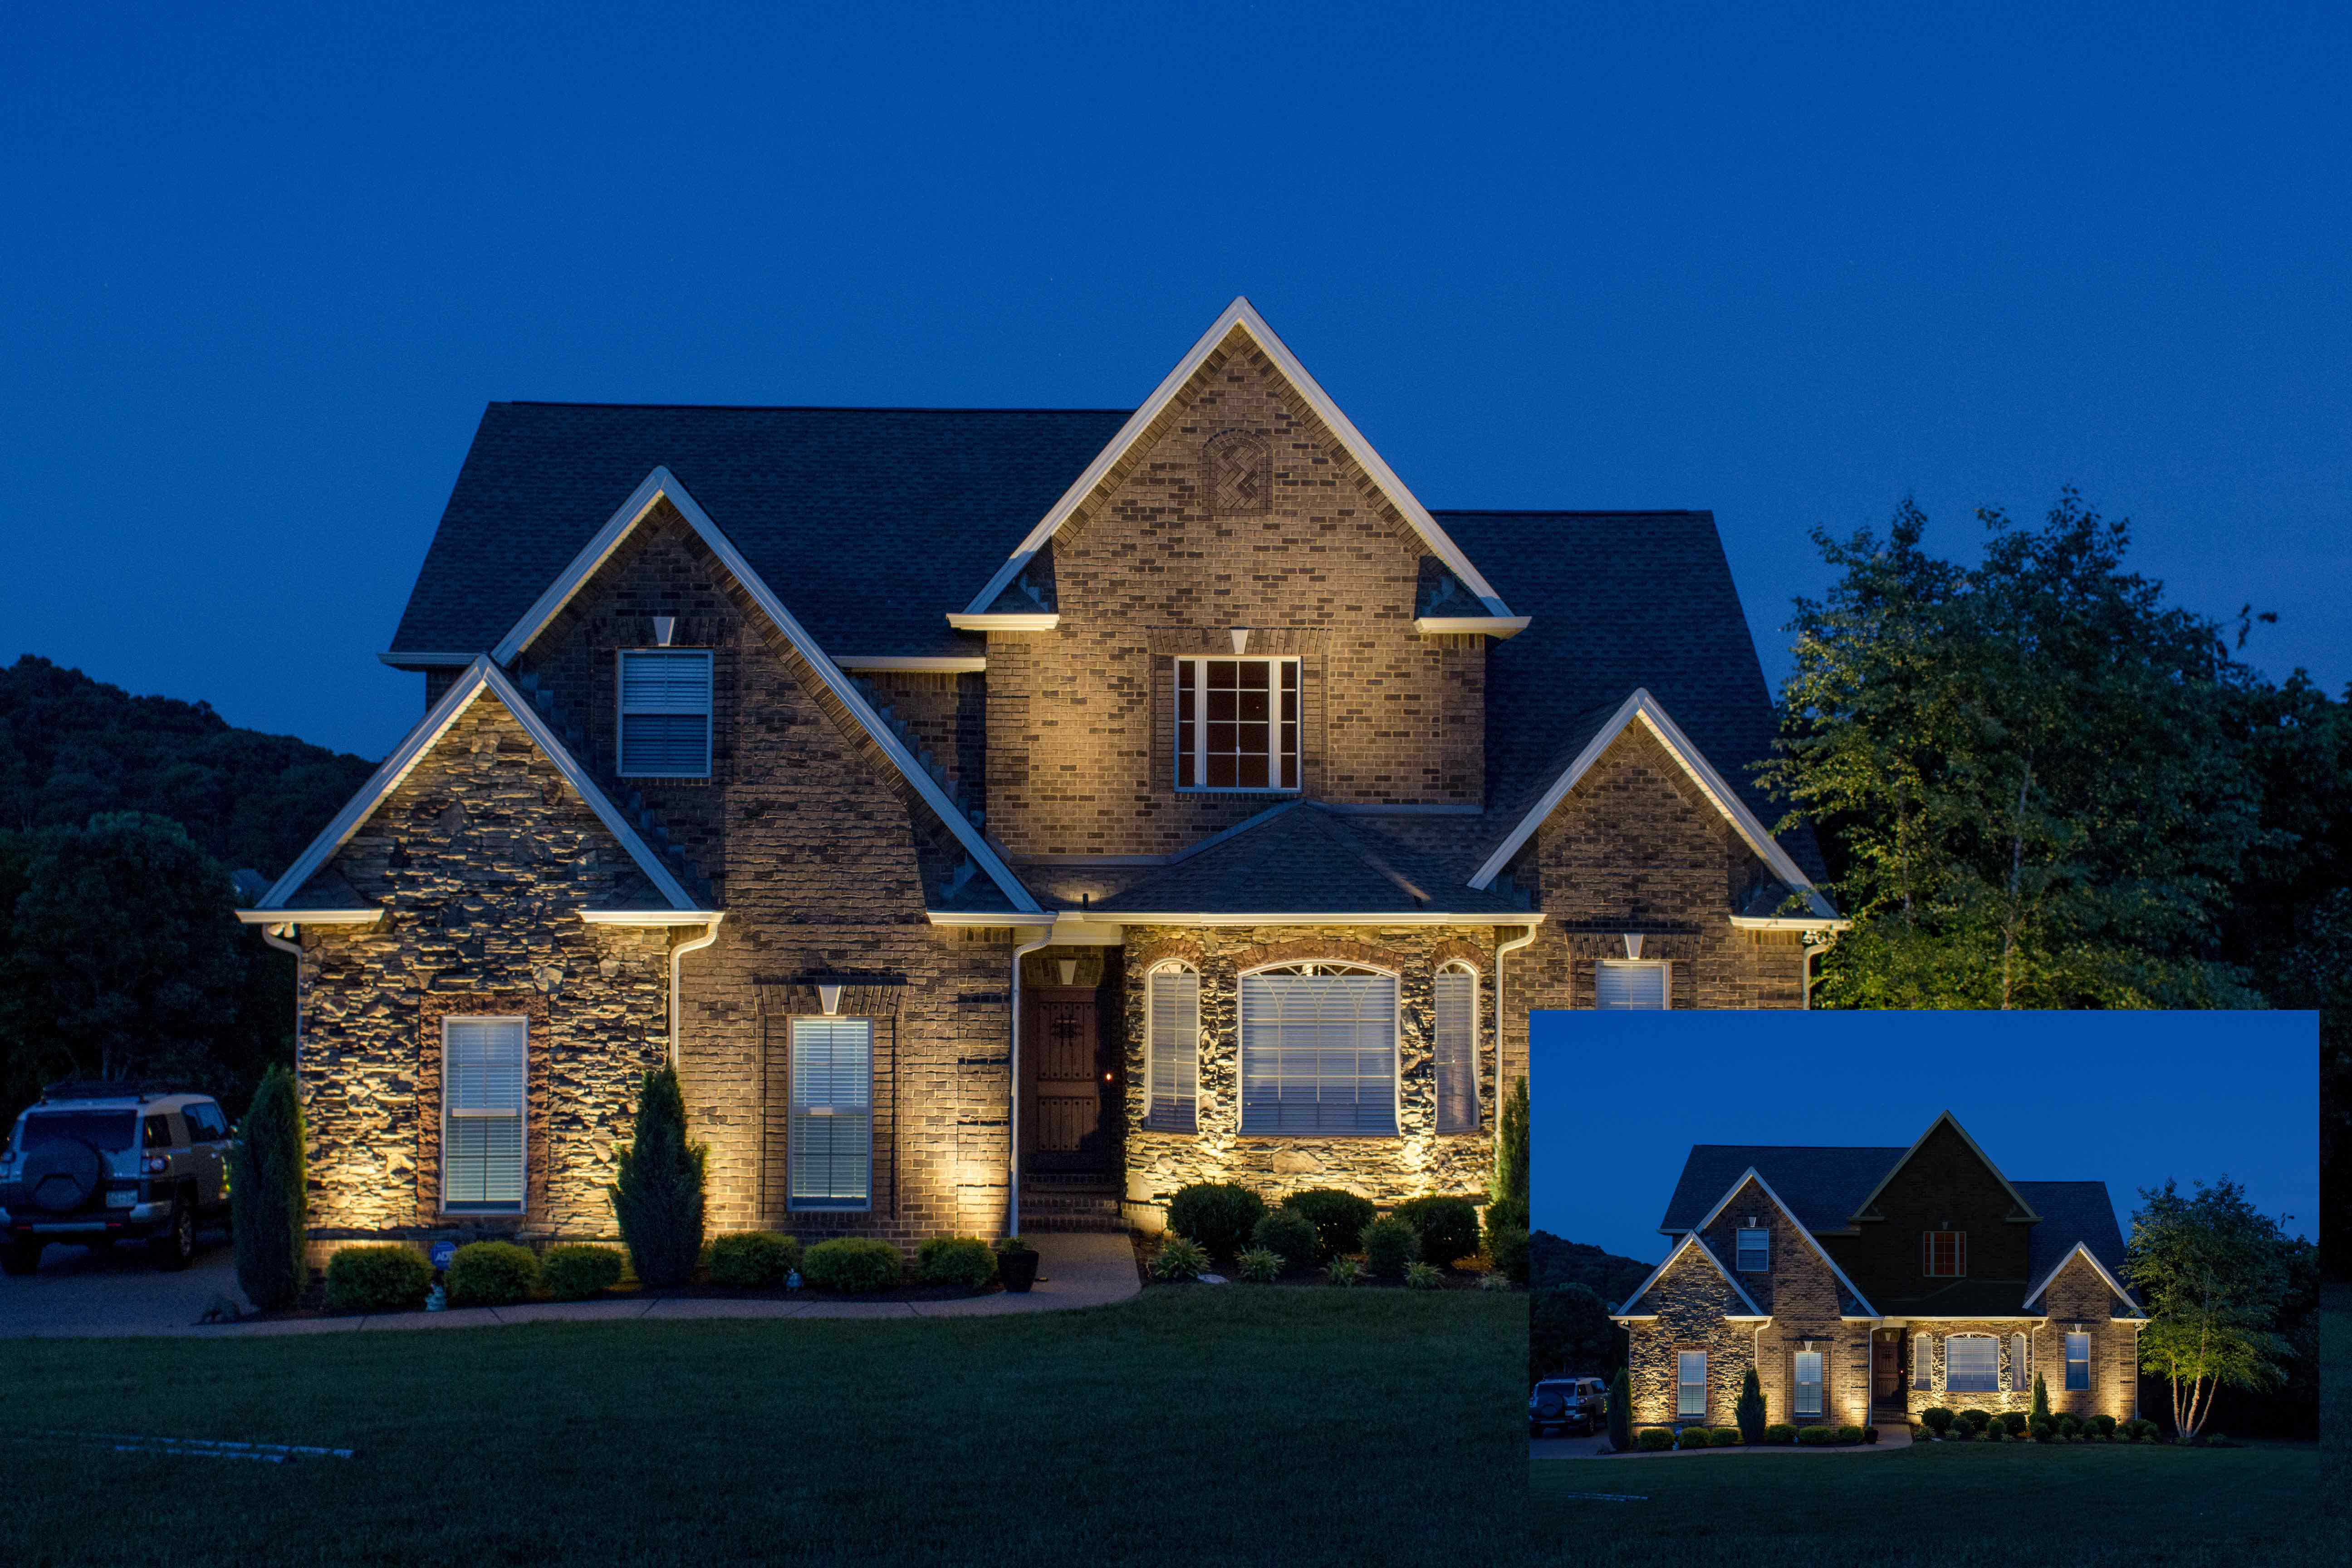 How To Solve Accent Lighting Challenges On Two-Story Homes